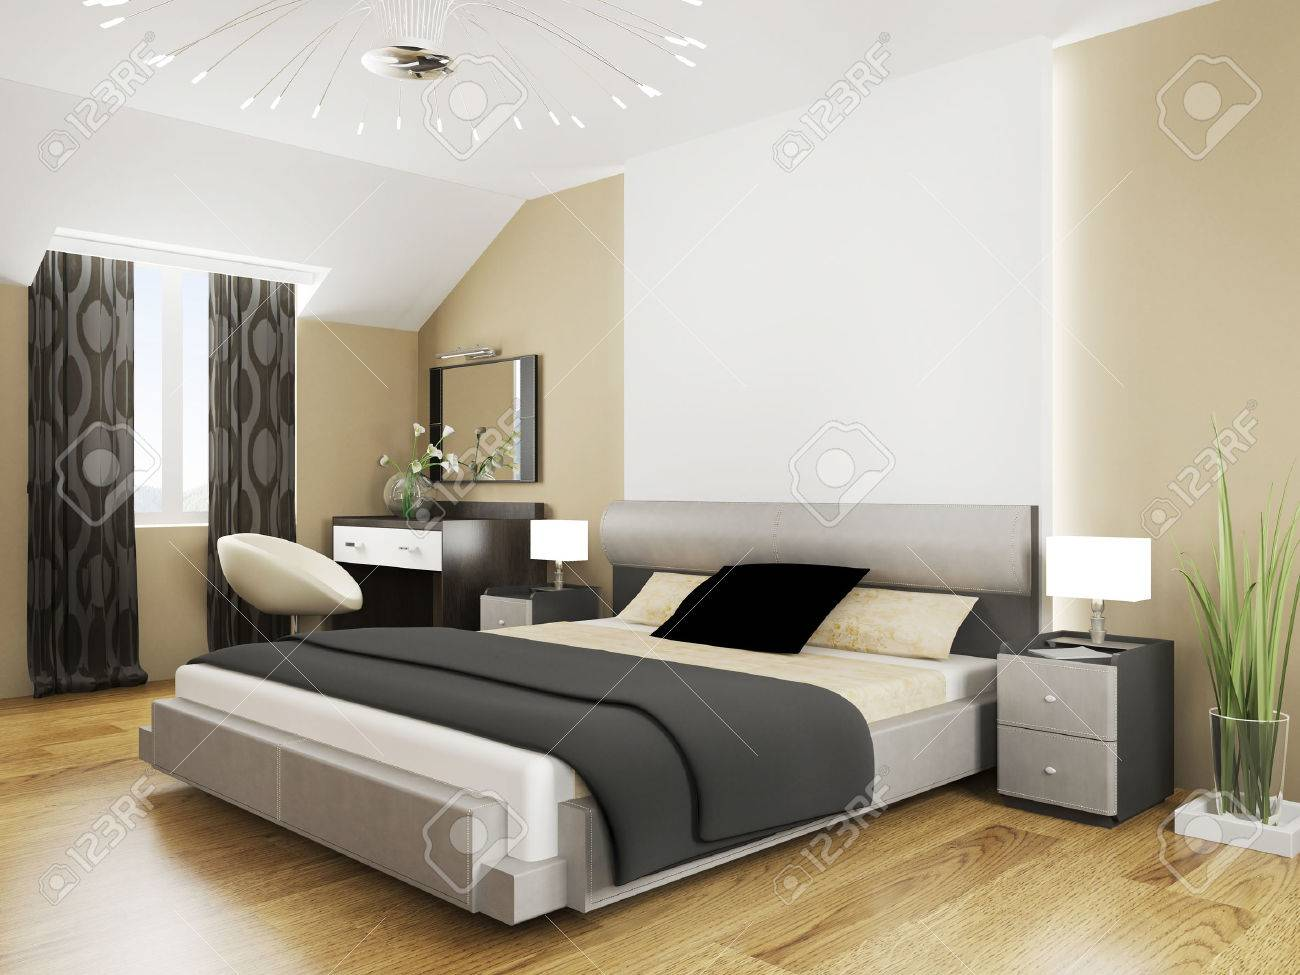 Bedroom in contemporary style 3d rendering